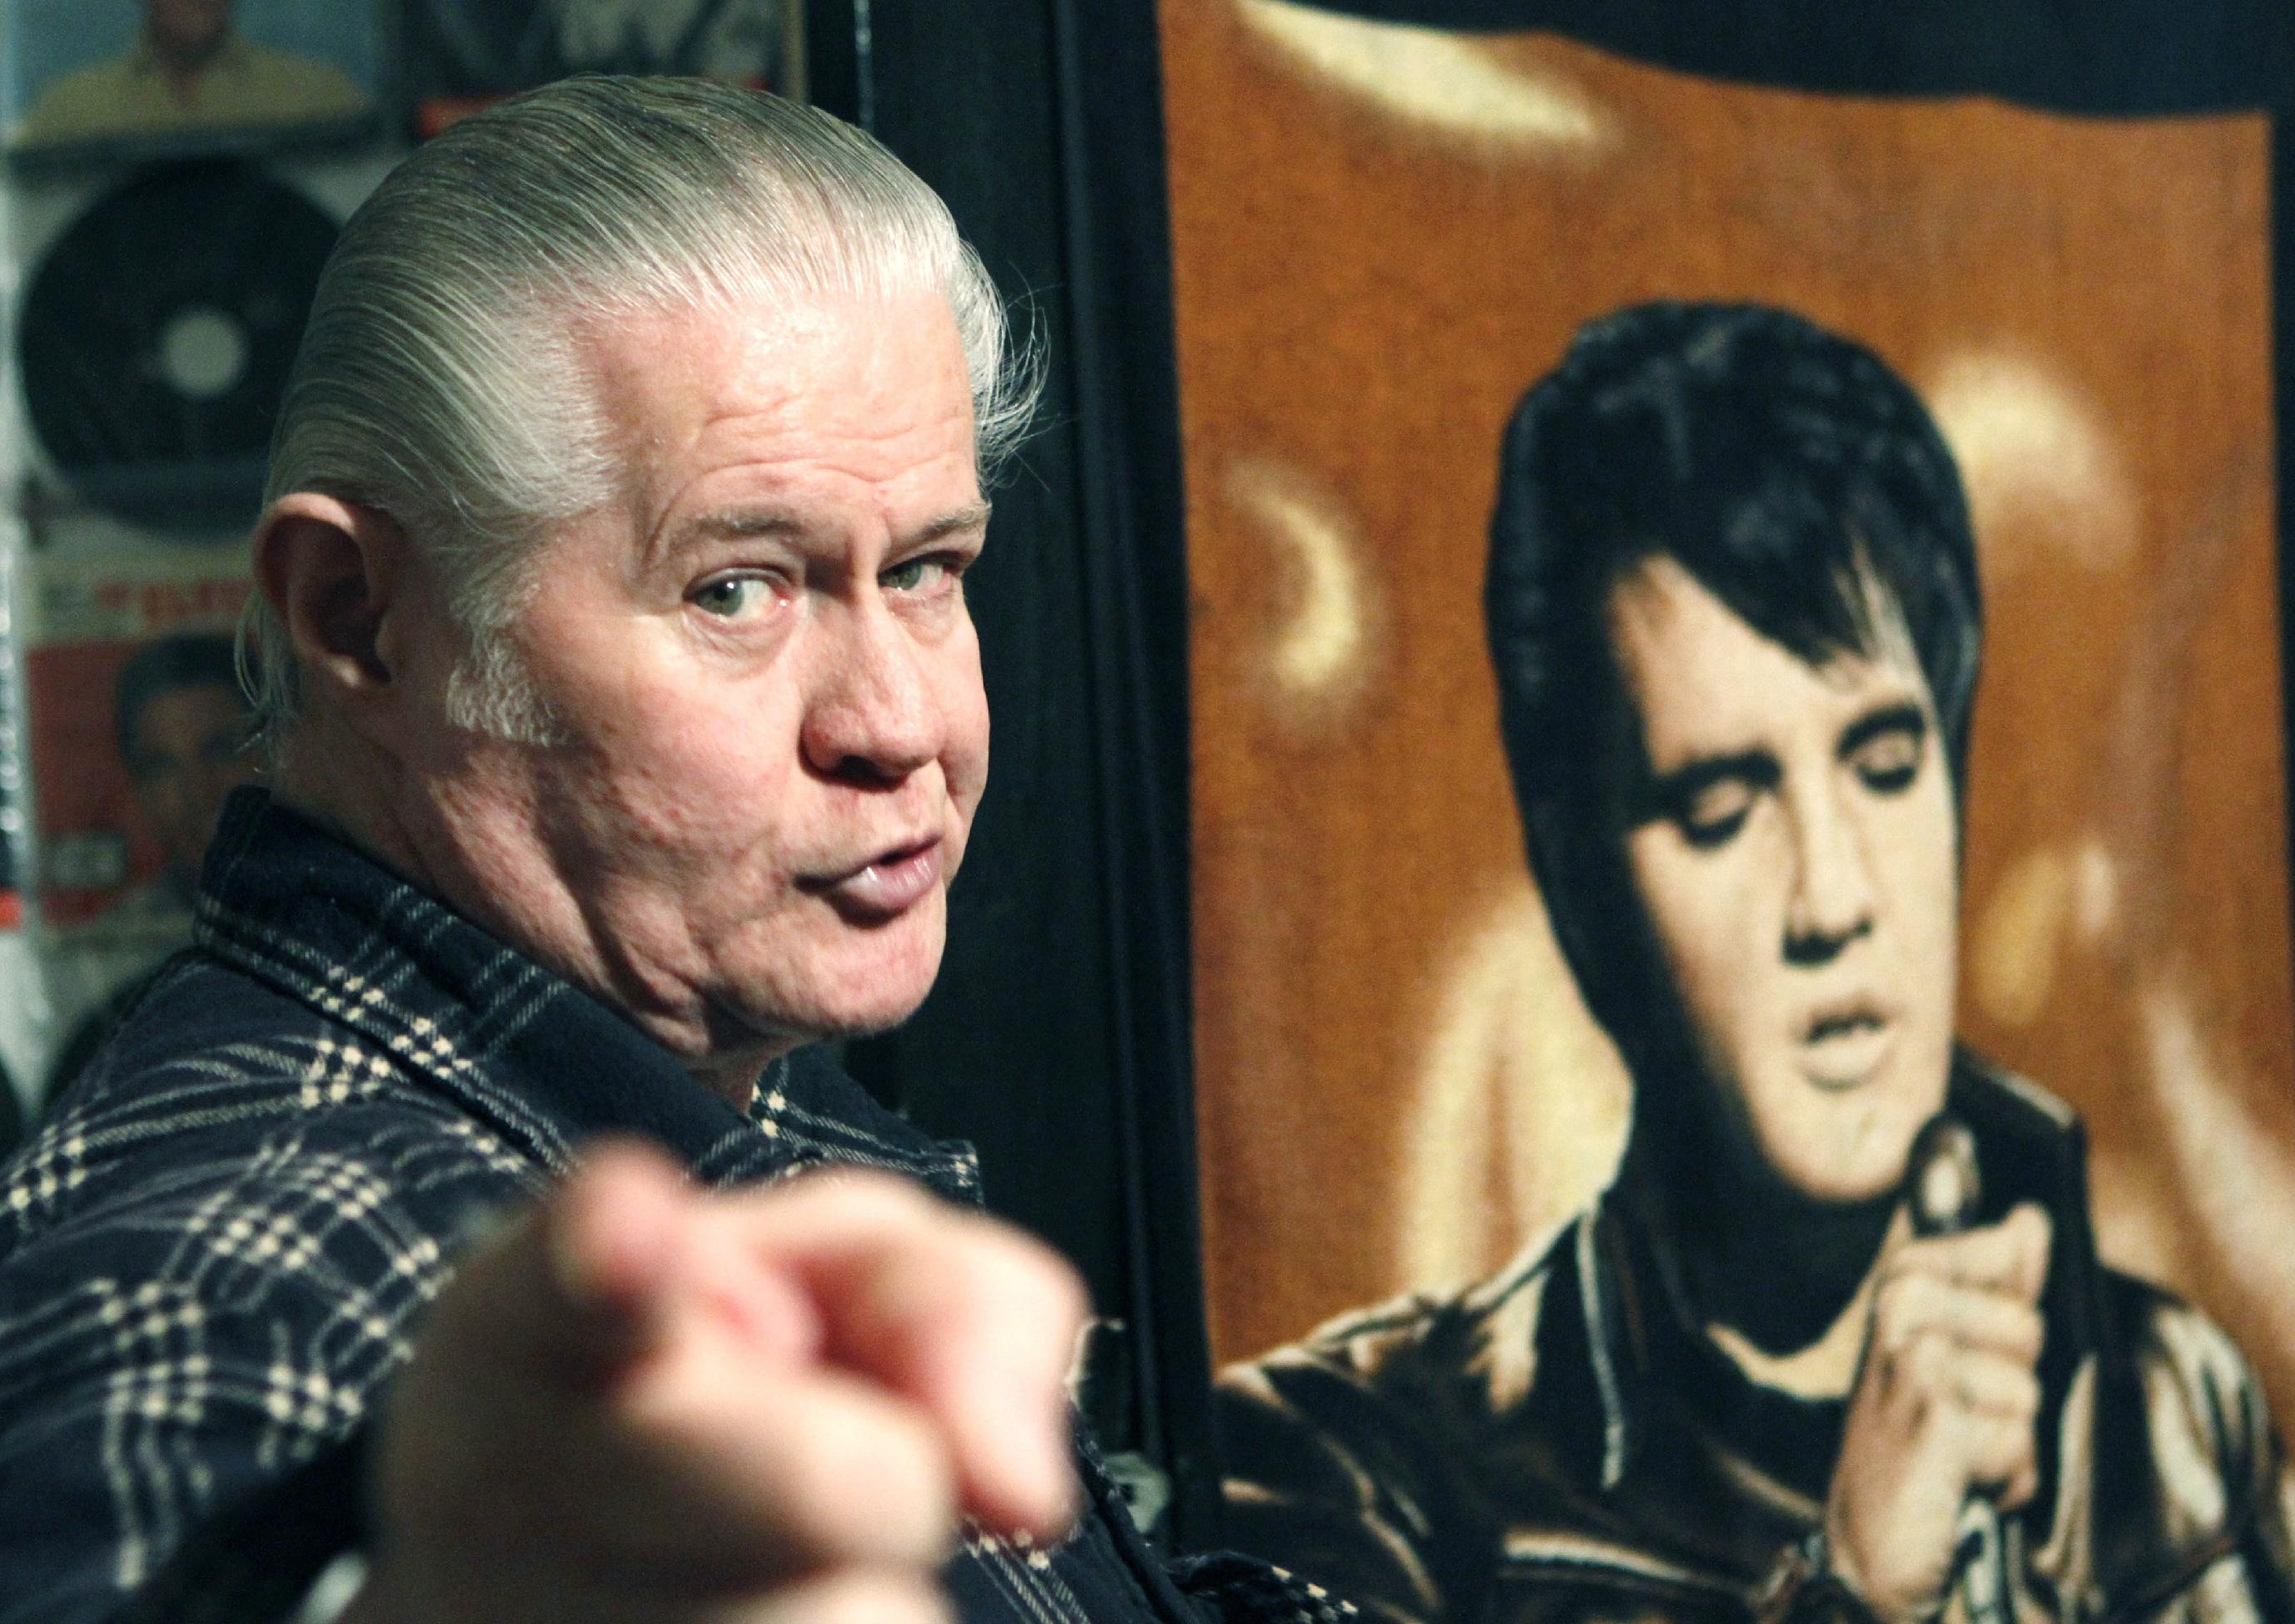 Kitschy treasure trove of Elvis tribute items up for auction